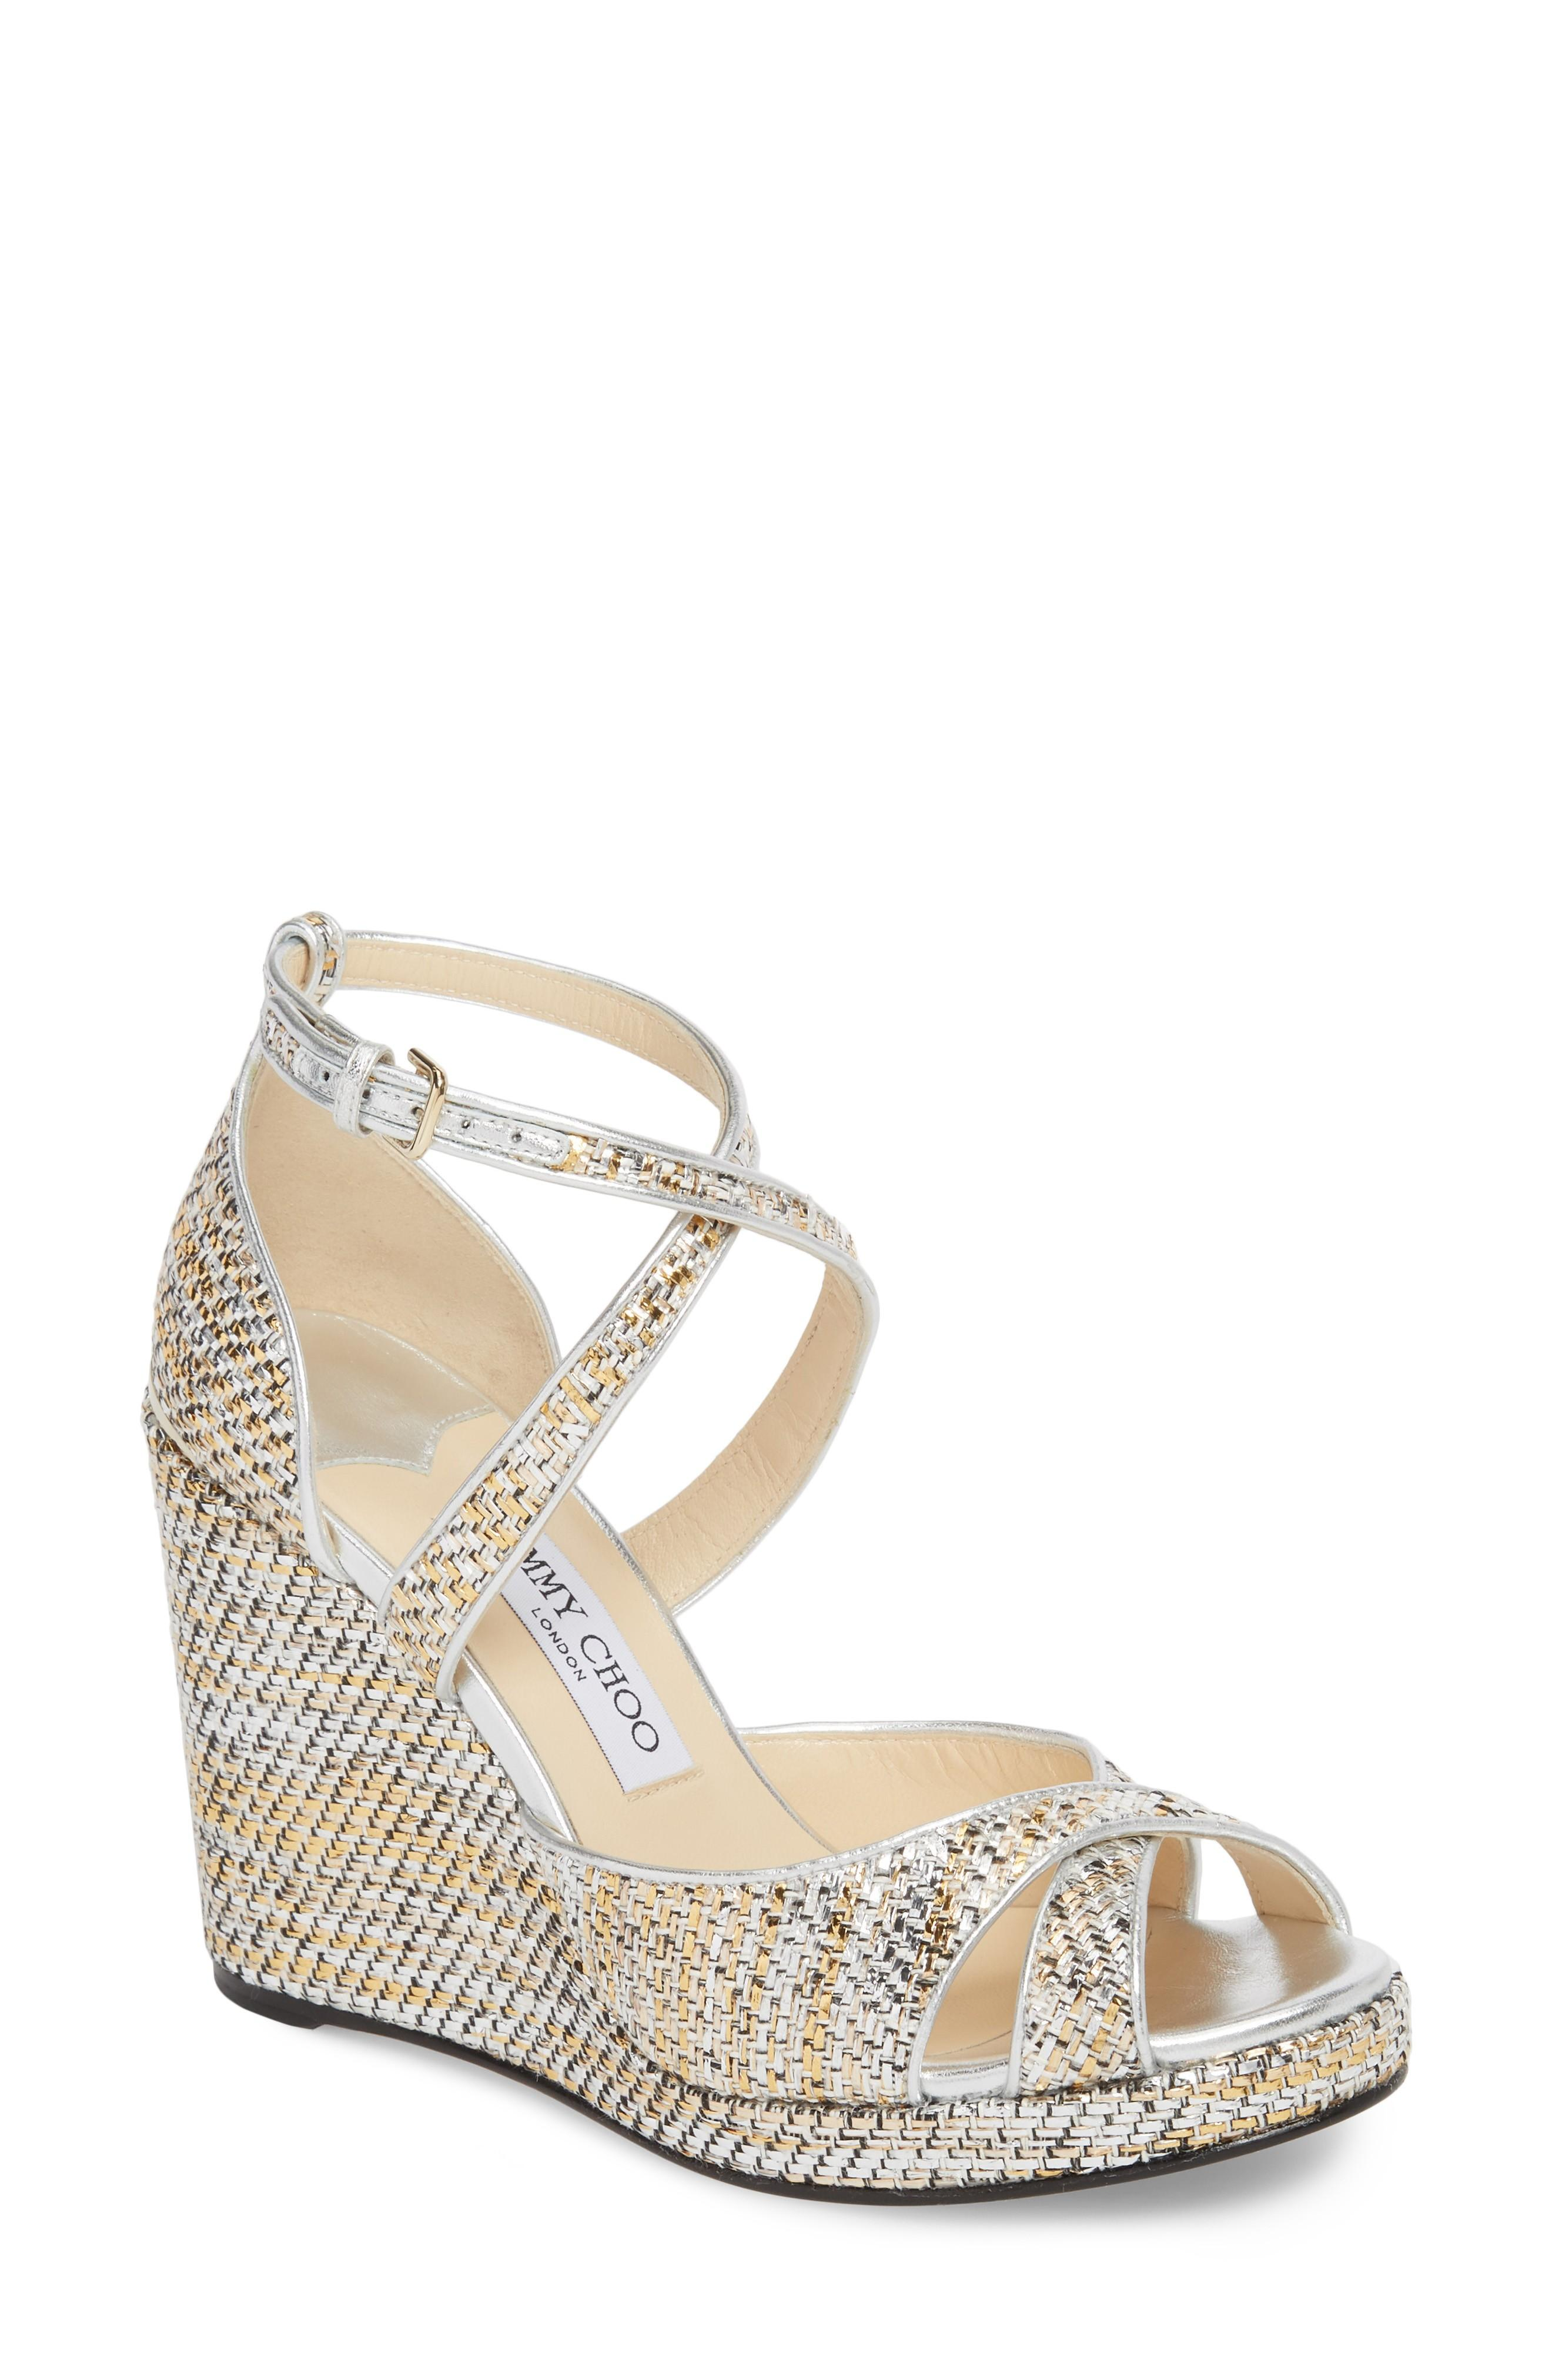 9335f1582311 Jimmy Choo Alanah 105 Woven Metallic Wedge Sandals In Silver